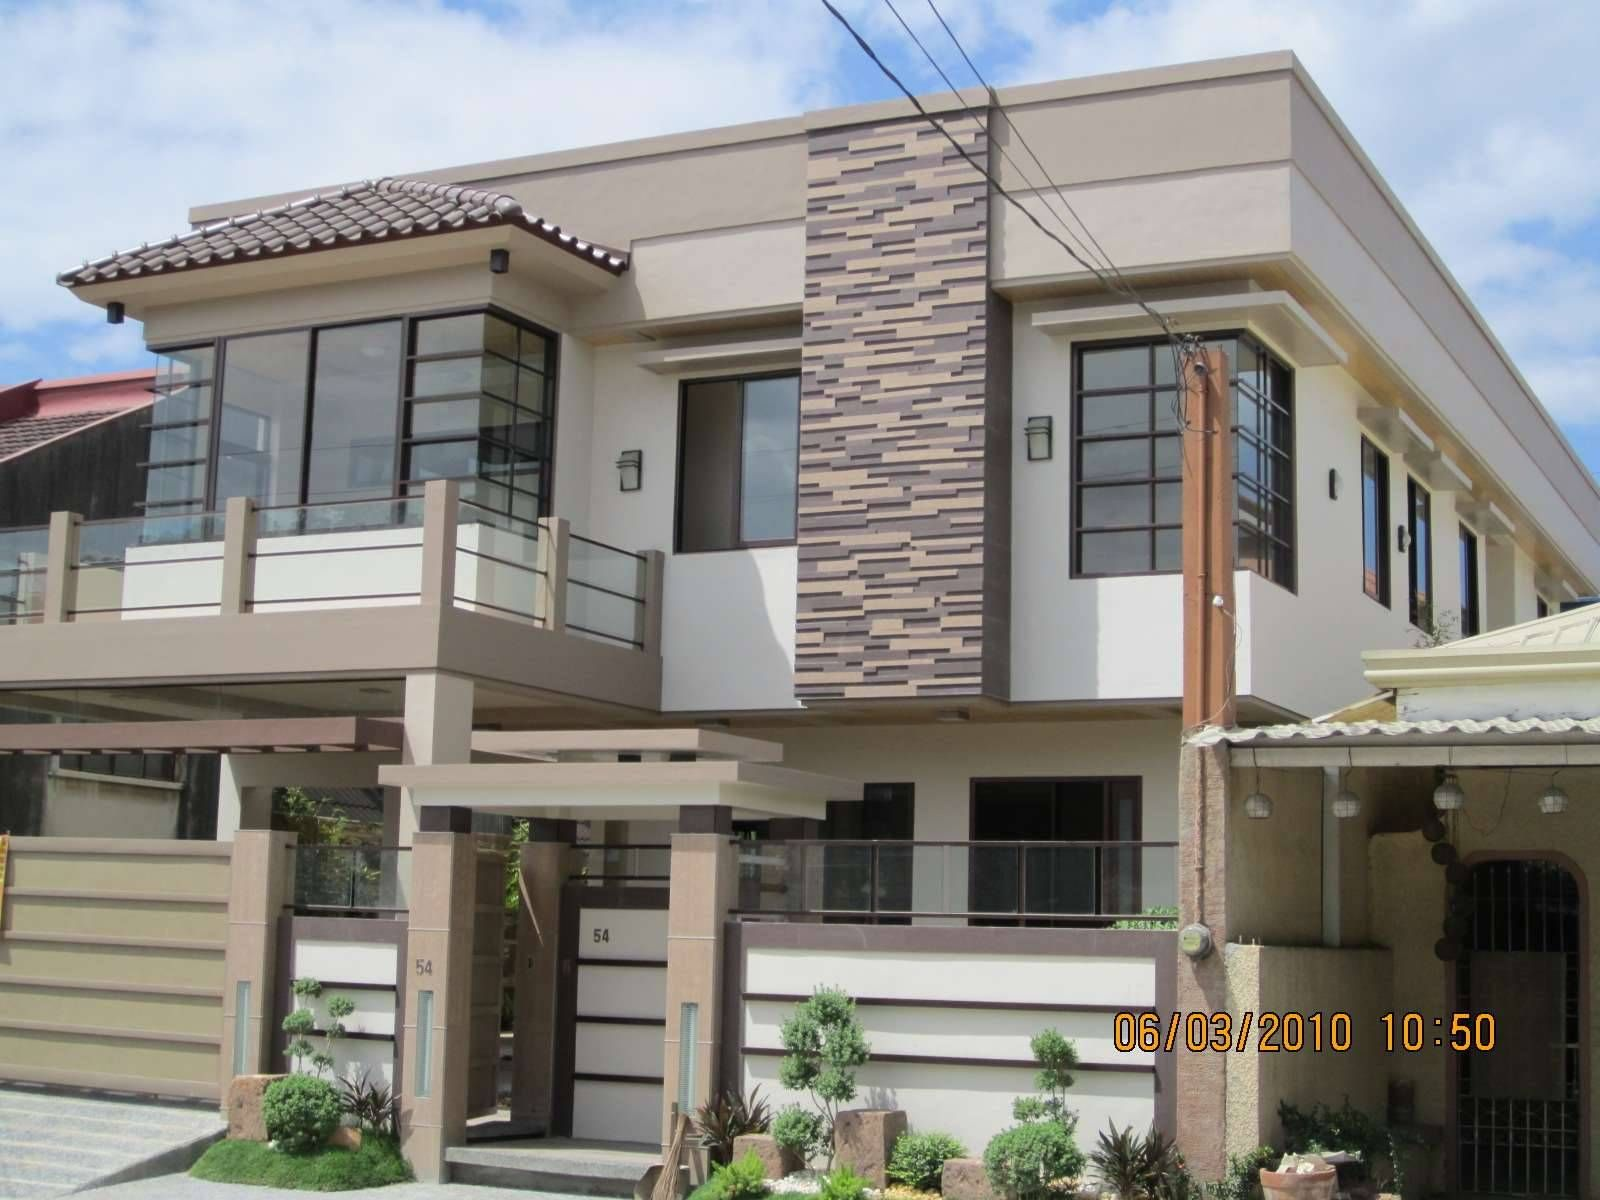 Philippines modern house exterior design dream house for Exterior housing design